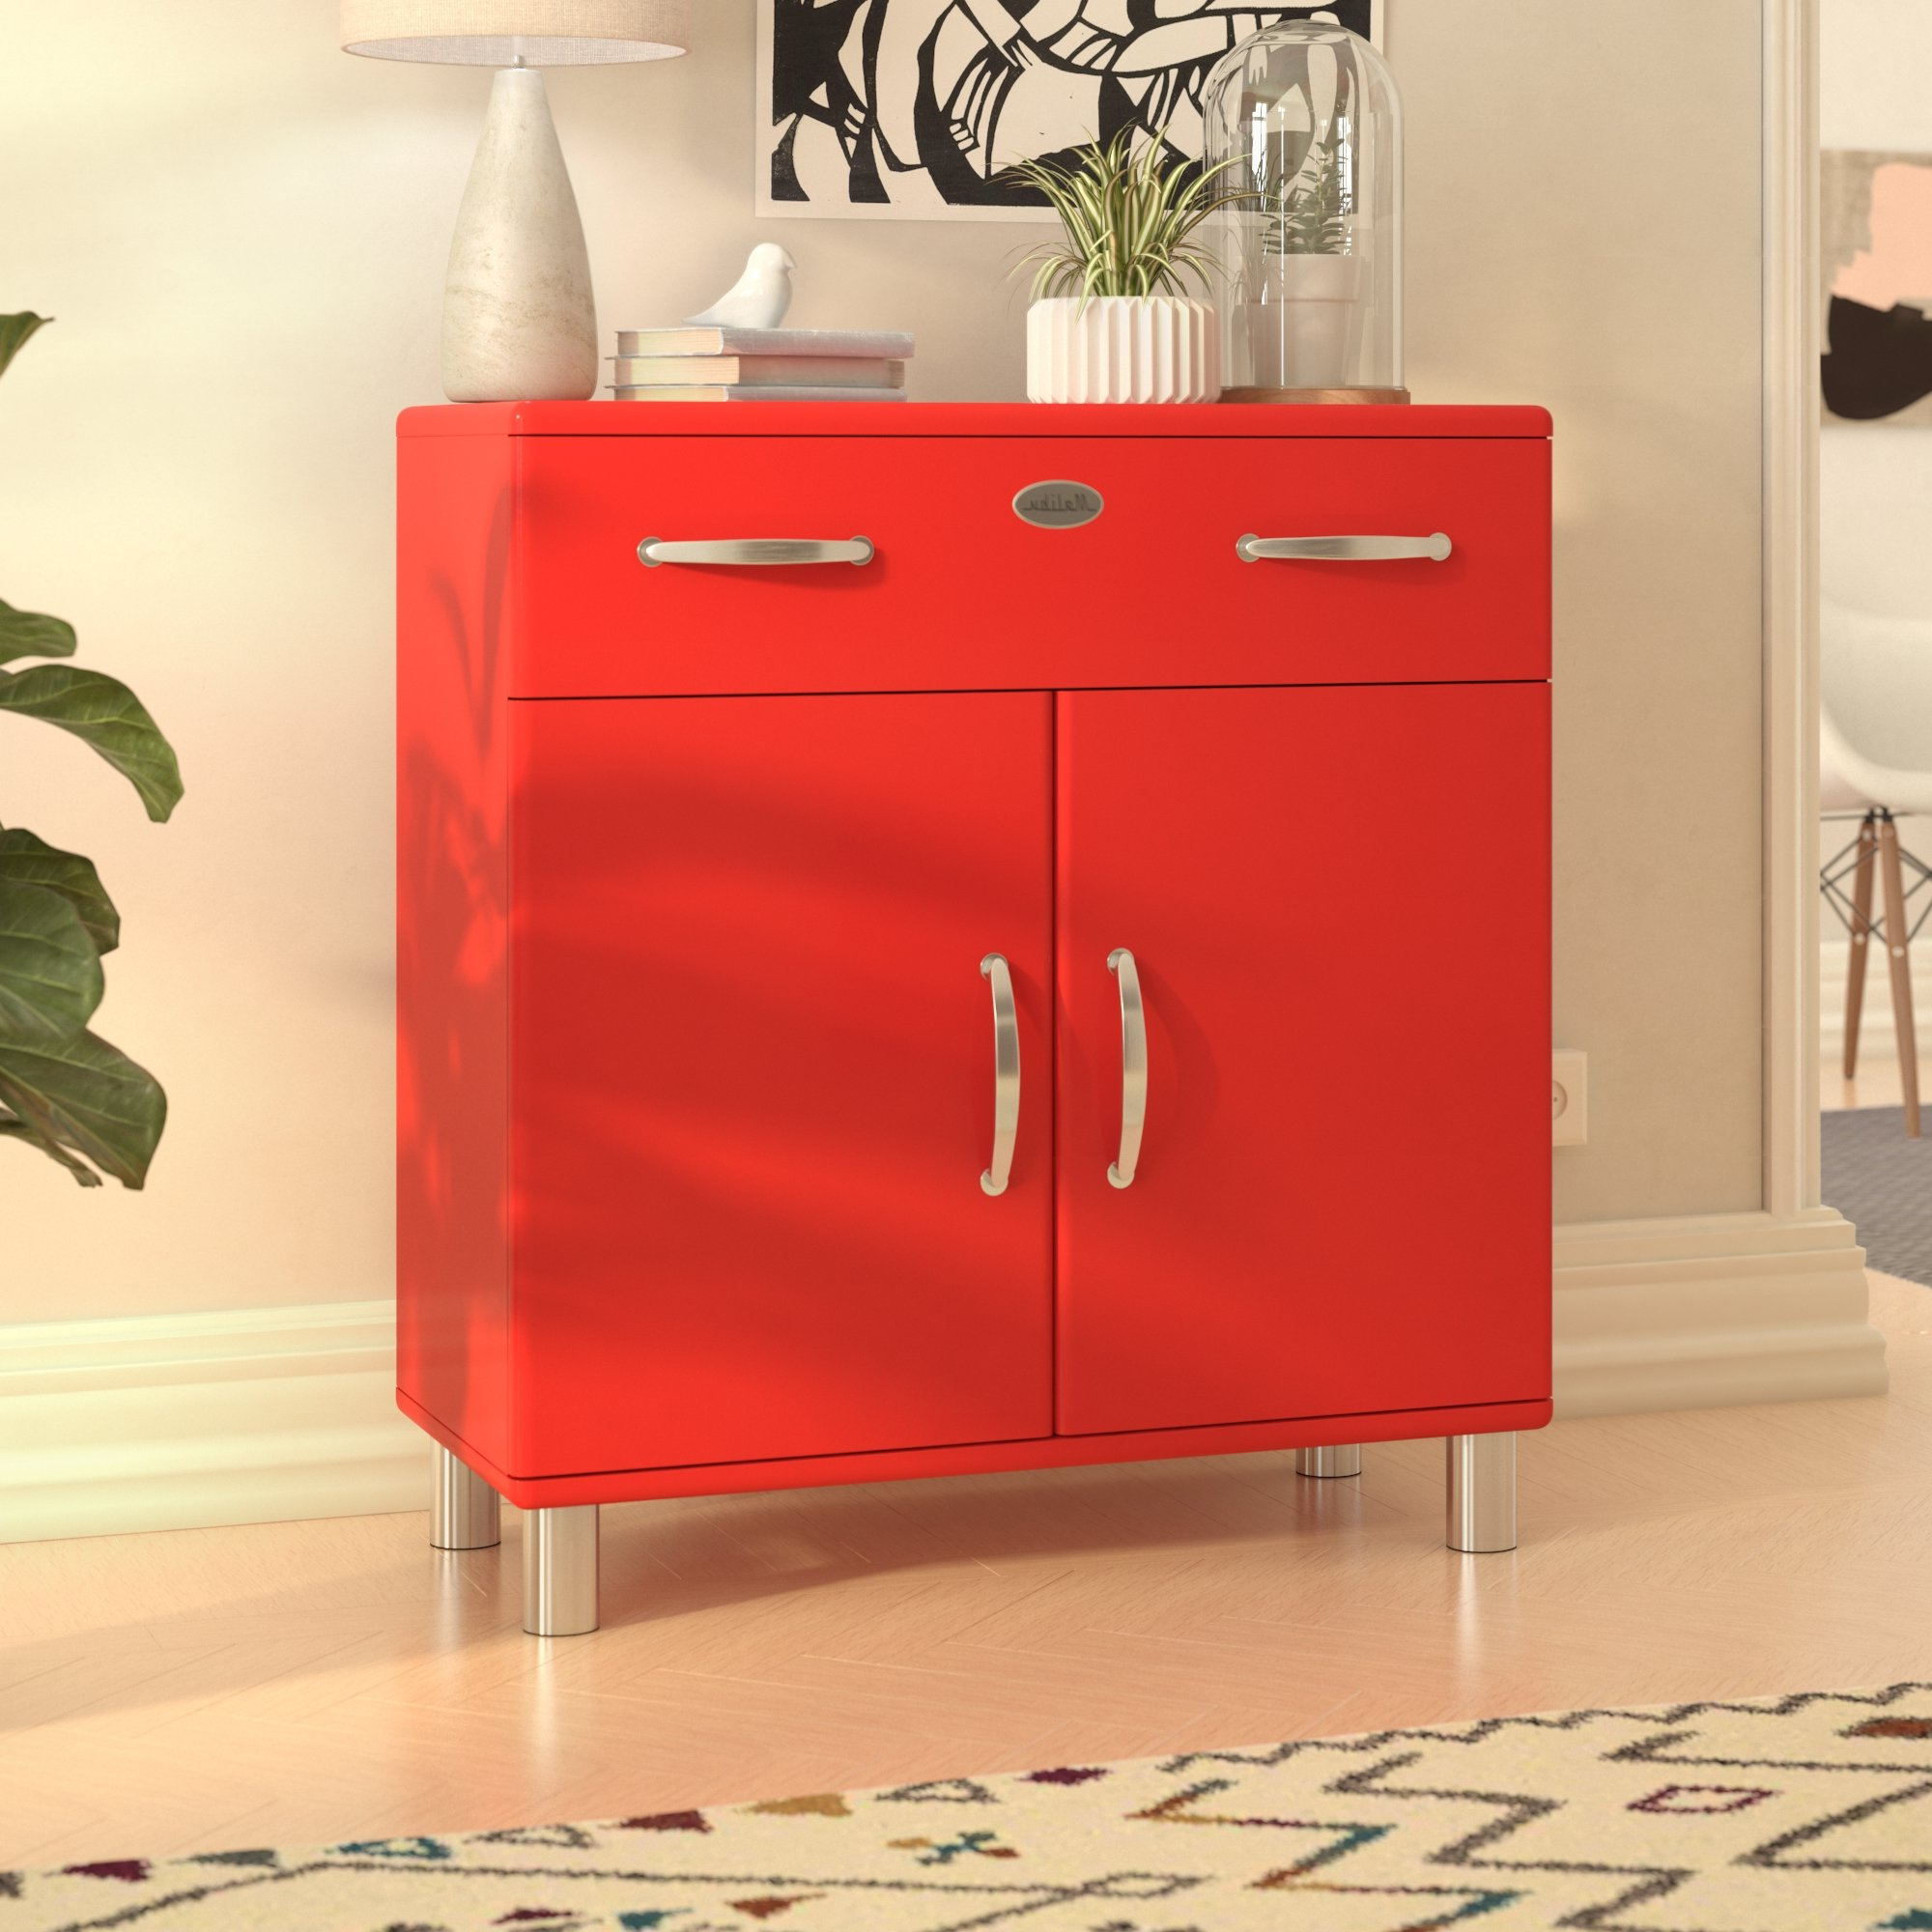 Malibu 2 Door 1 Drawer Sideboards For Well Known Malibu 2 Door 1 Drawer Combi Chest (View 5 of 20)